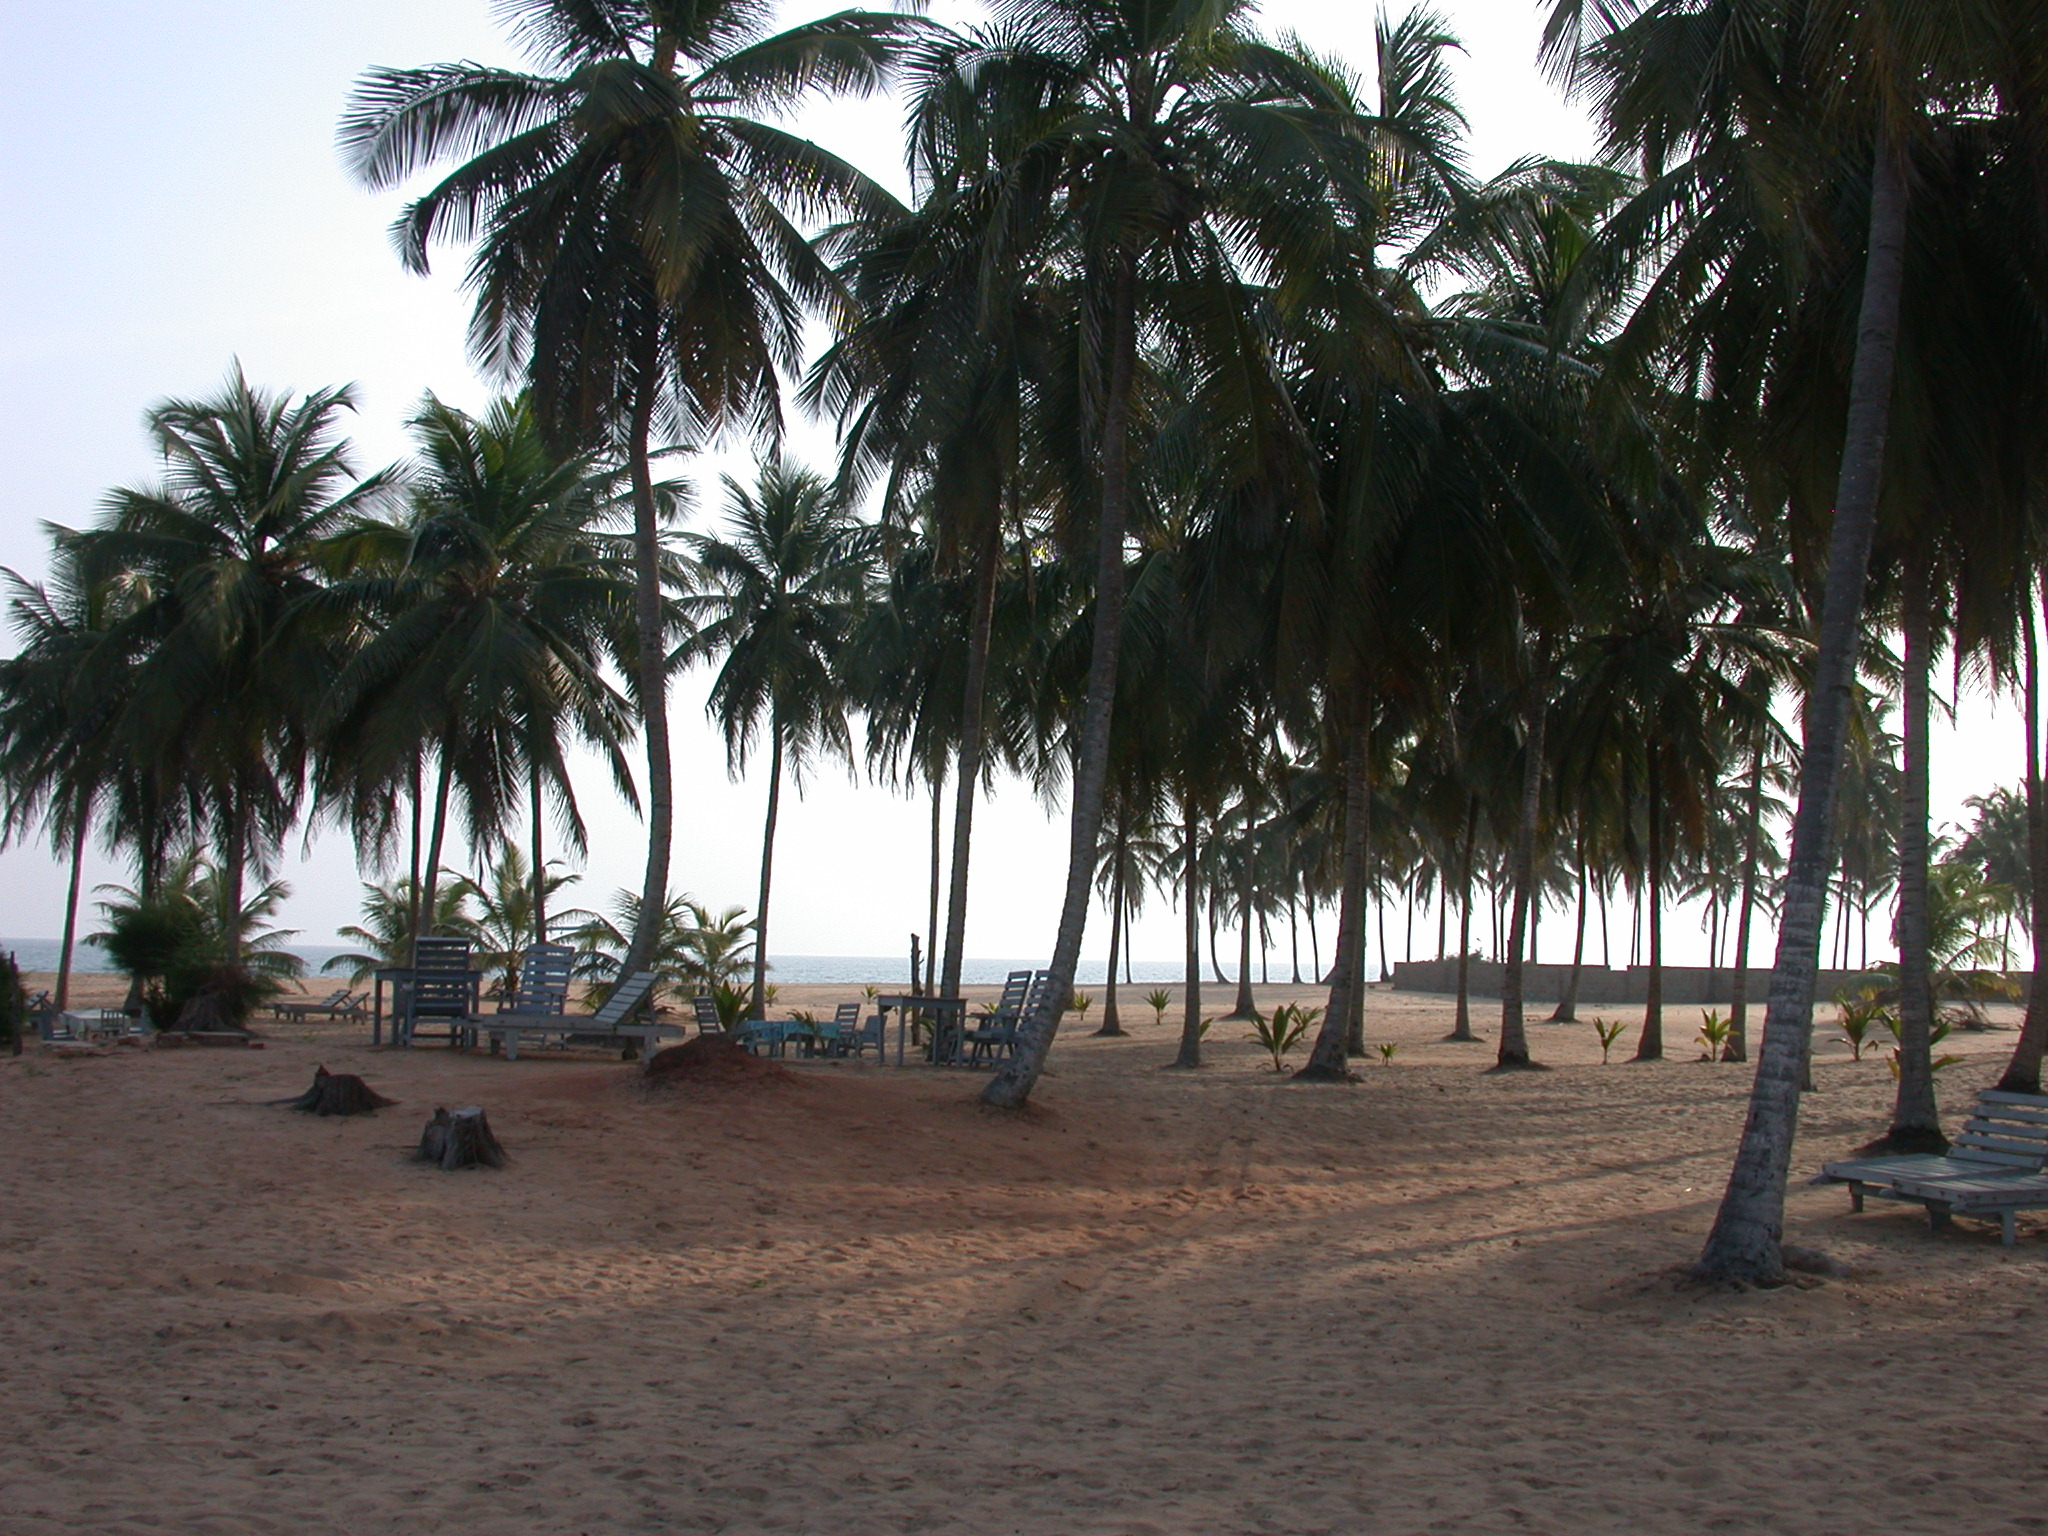 Beach and Palms, Hotel Jardin Brasilien, Ouidah, Benin